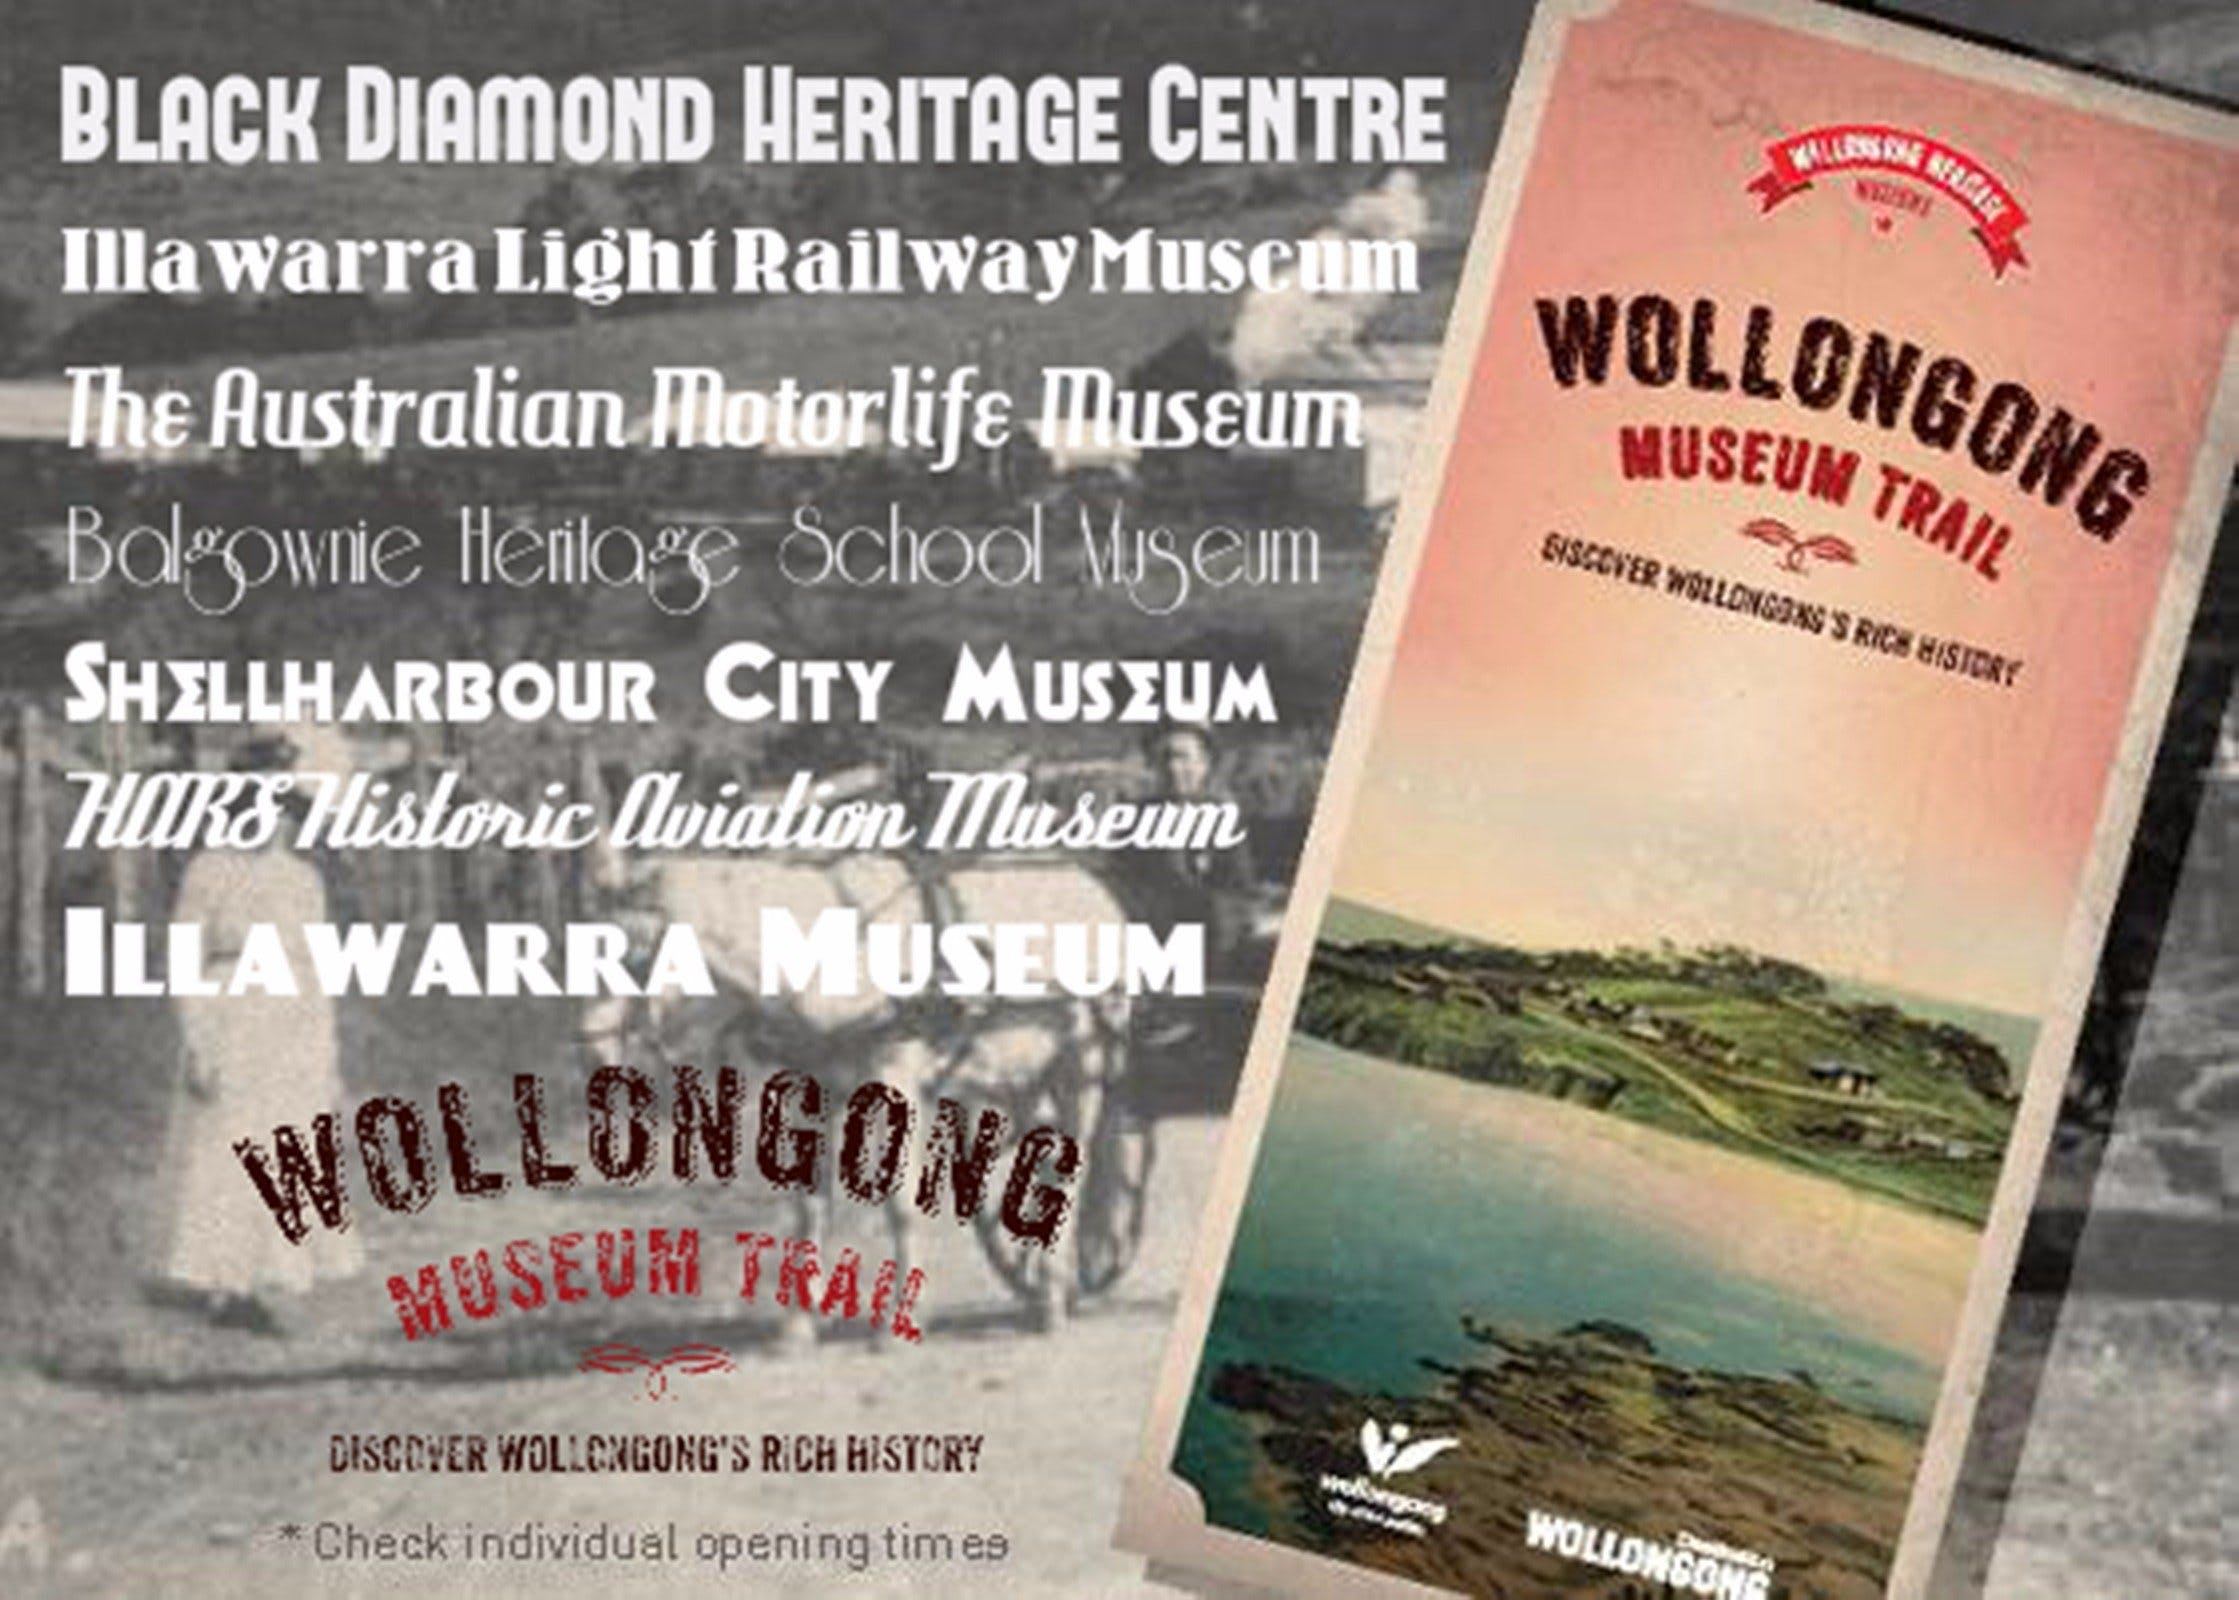 Wollongong Museum Trail - Tourism Cairns